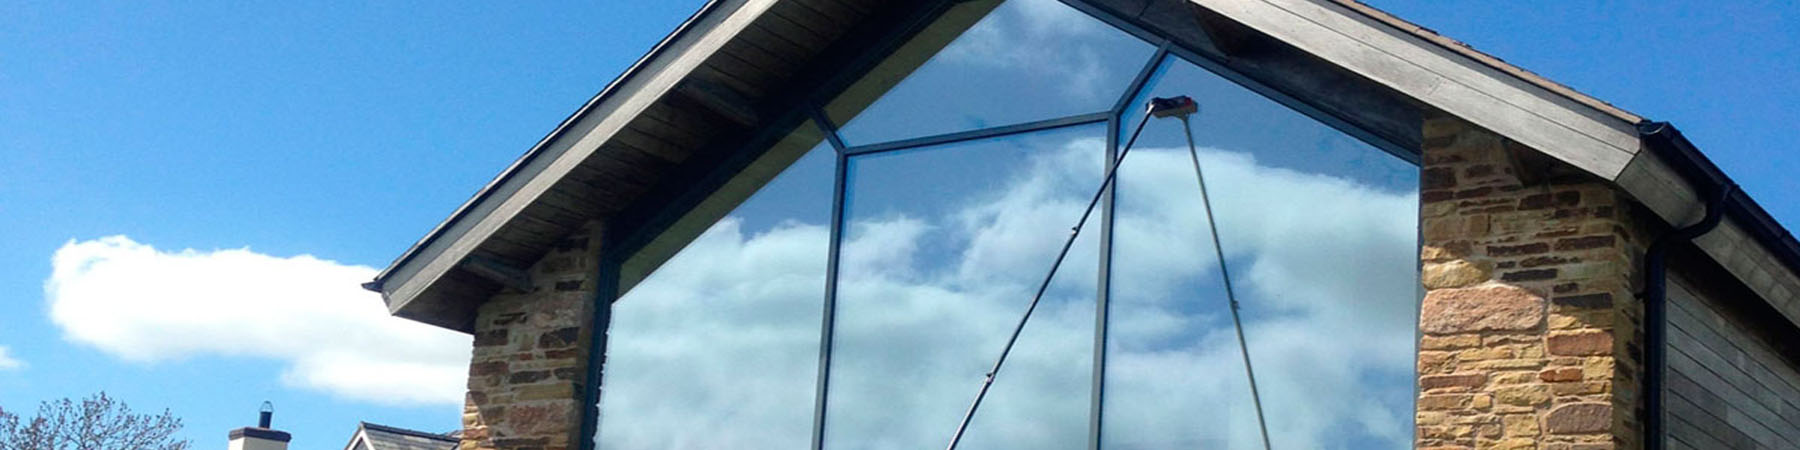 window-cleaners-pershore